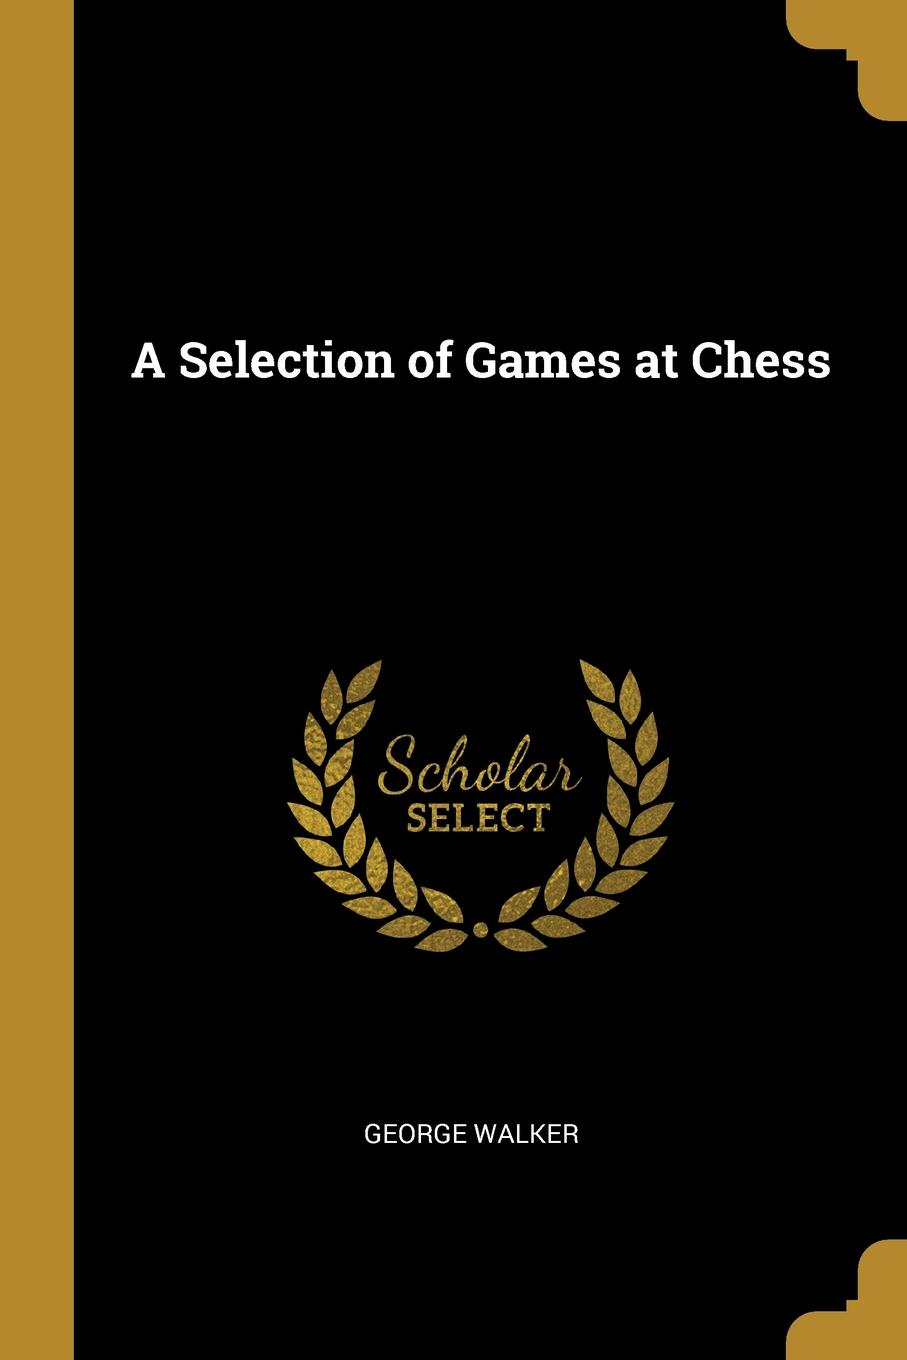 George Walker. A Selection of Games at Chess